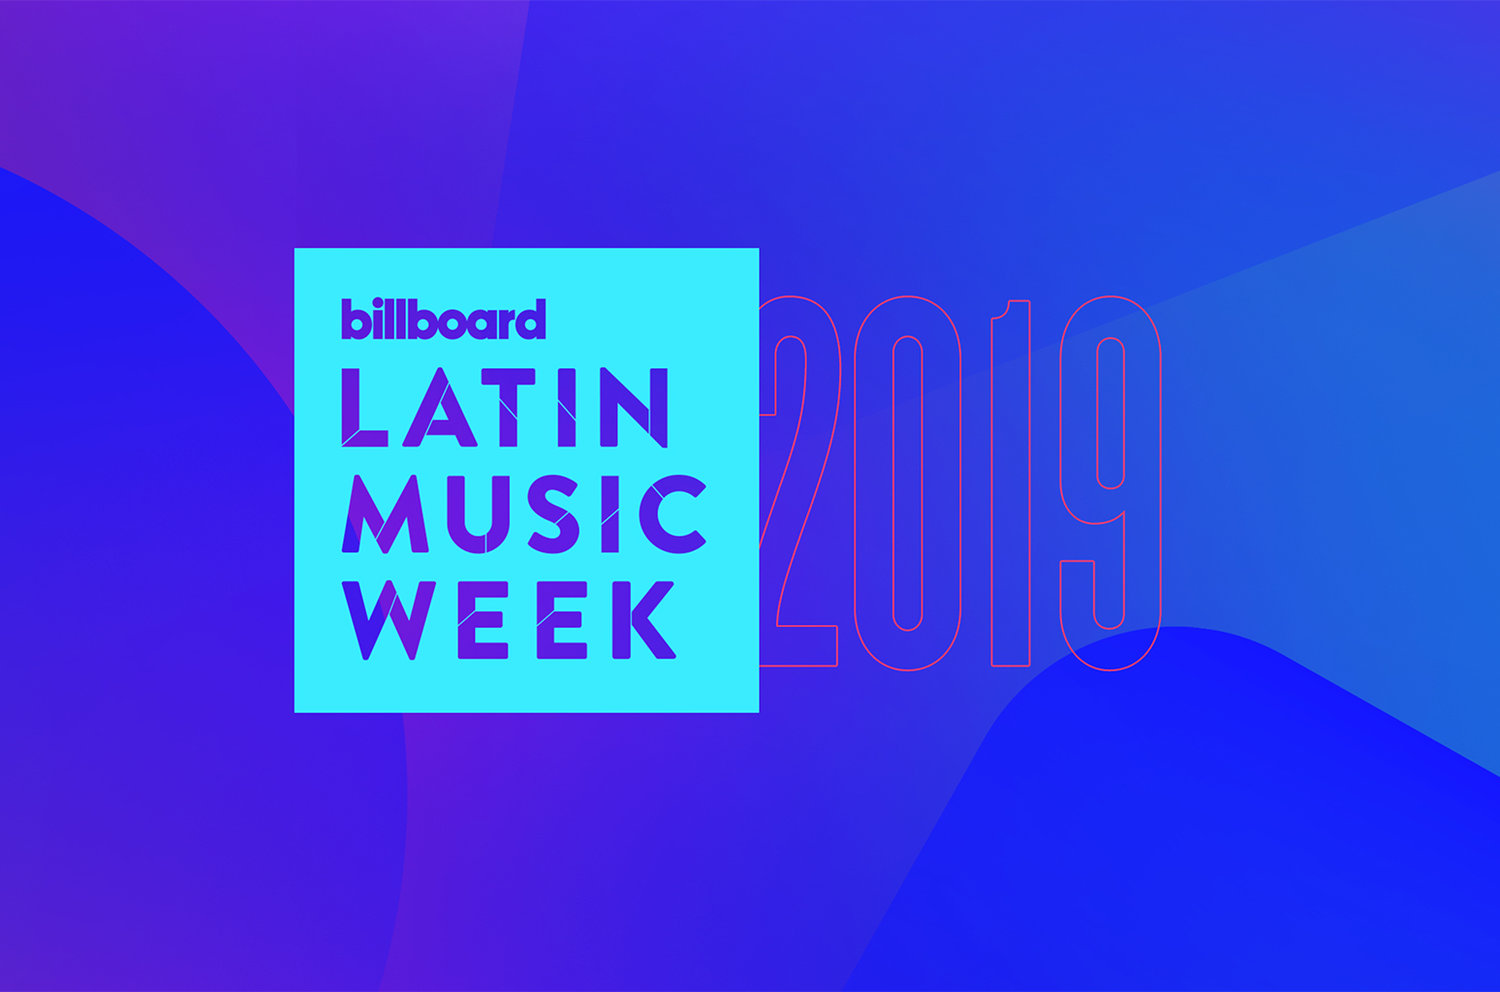 Las Vegas se prepara para los Billboard Latin Music Week